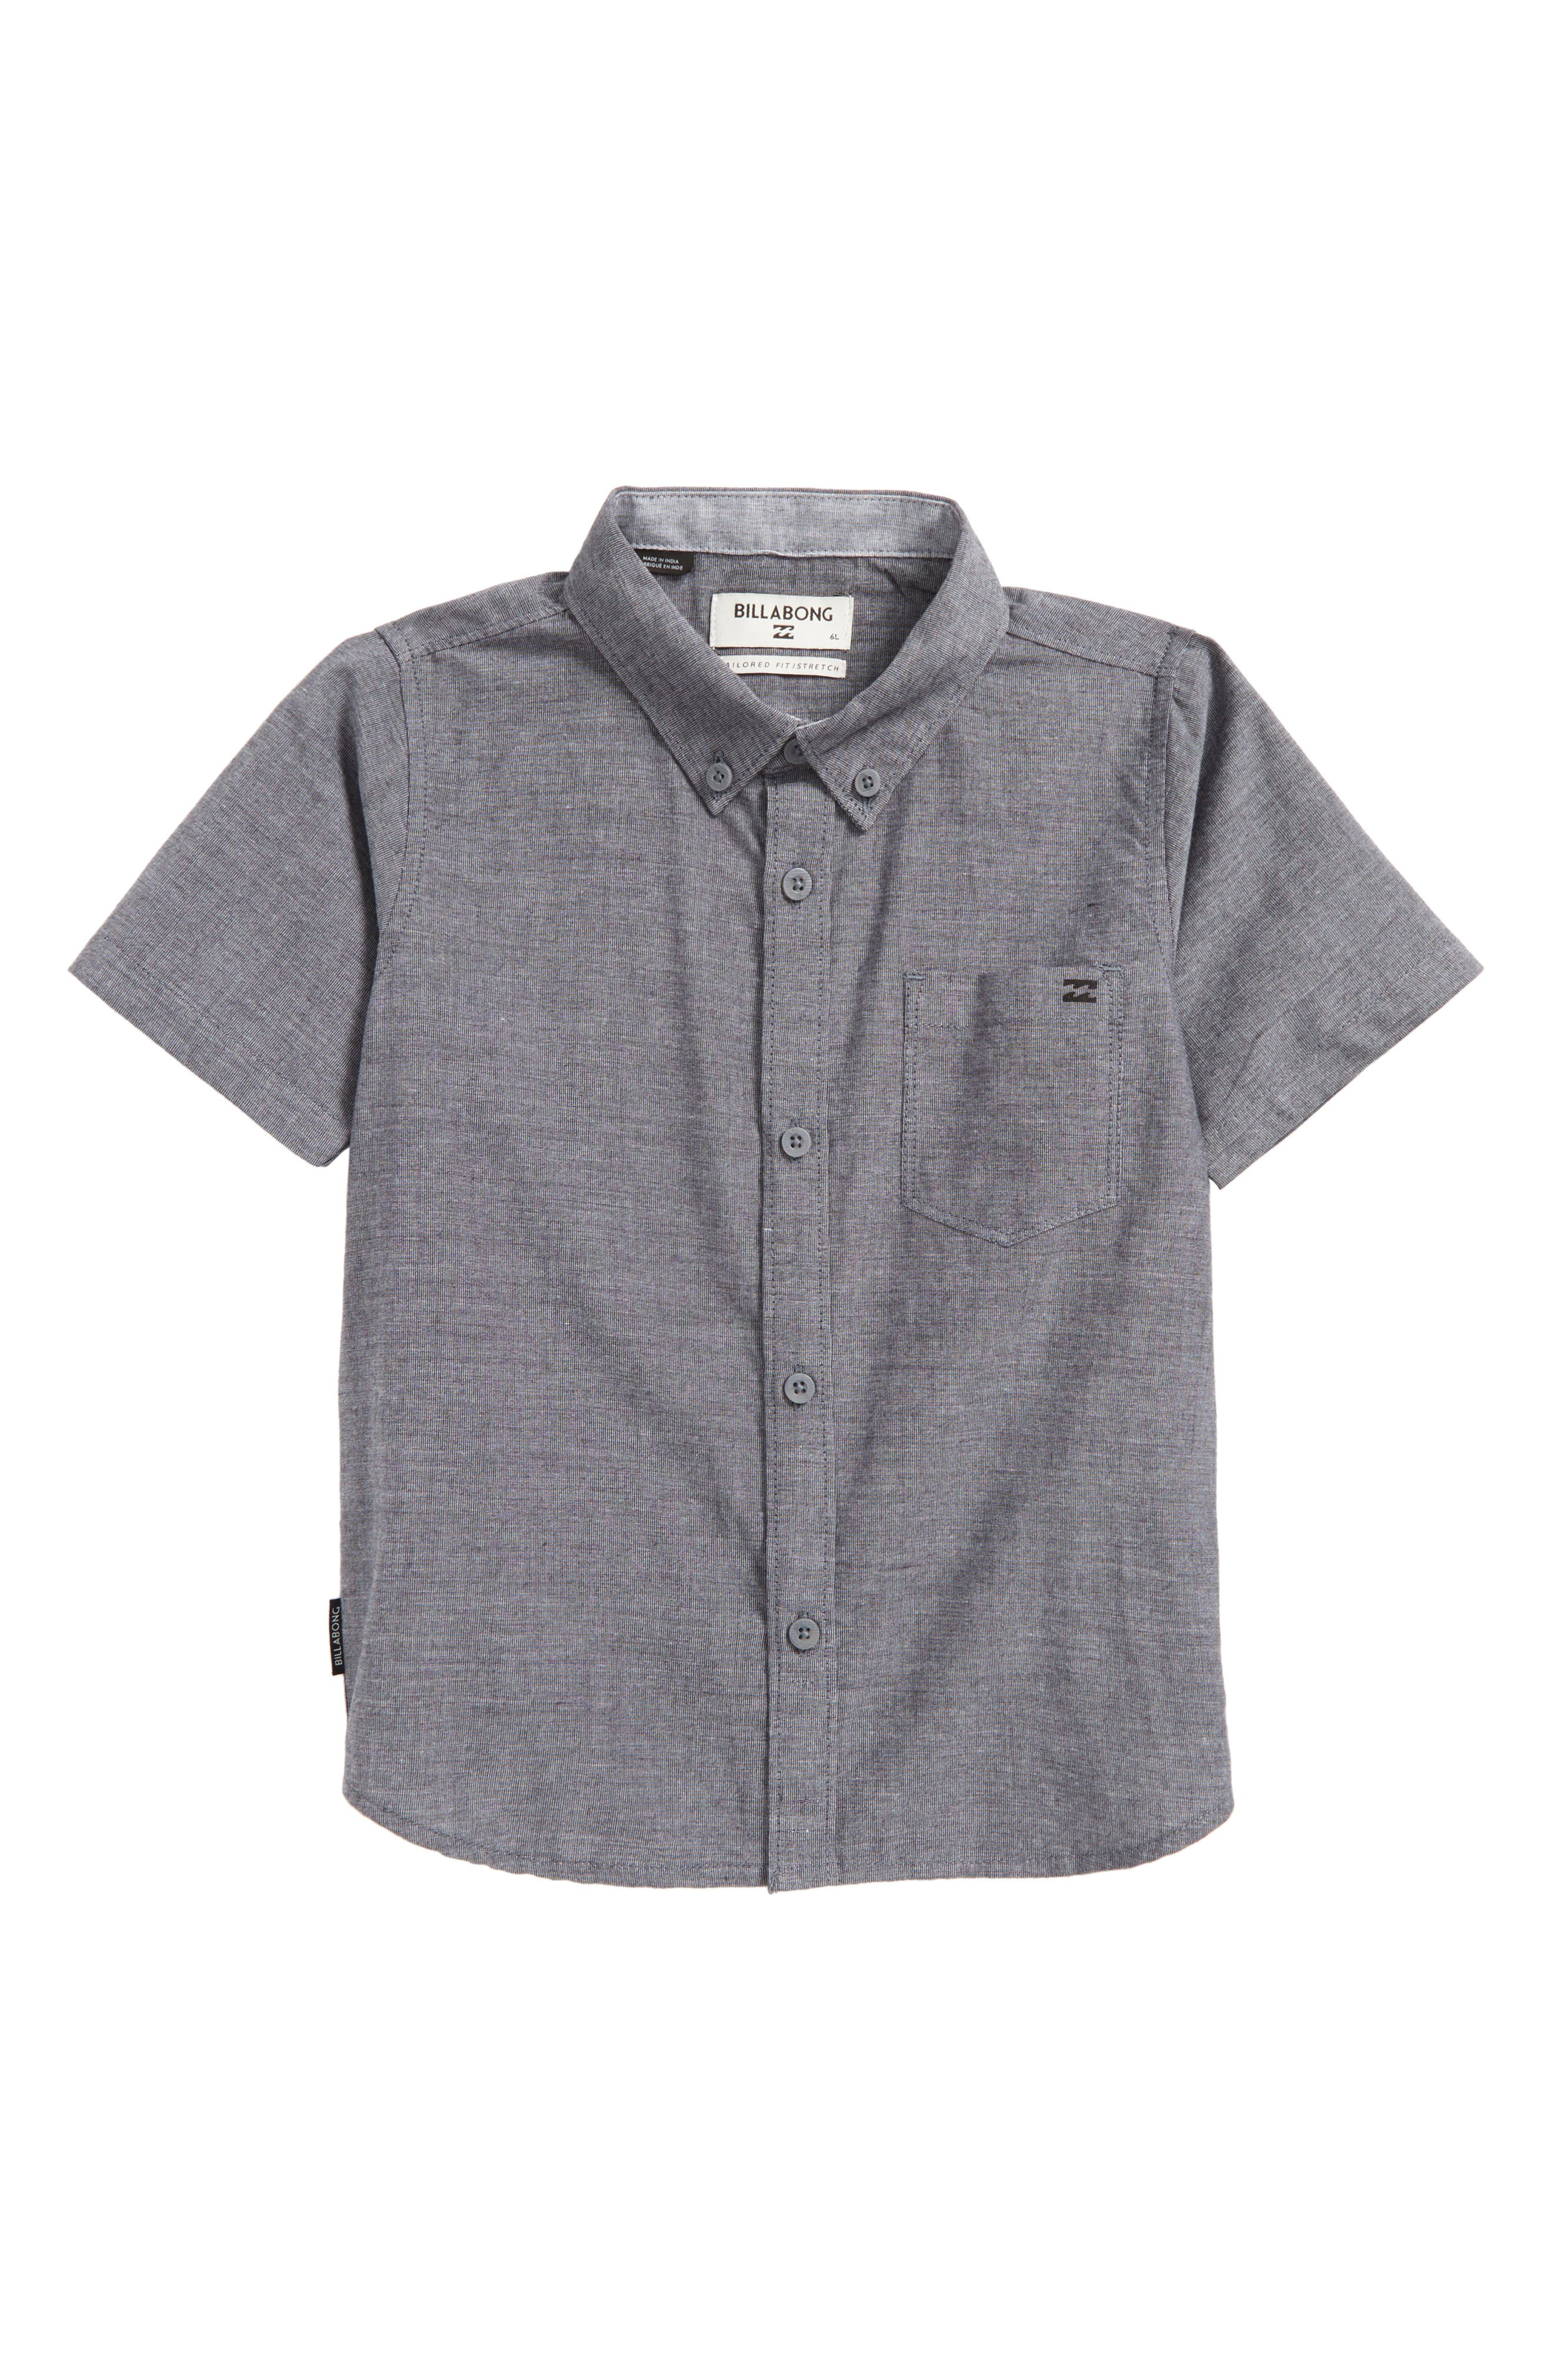 All Day Chambray Woven Shirt,                         Main,                         color, Black